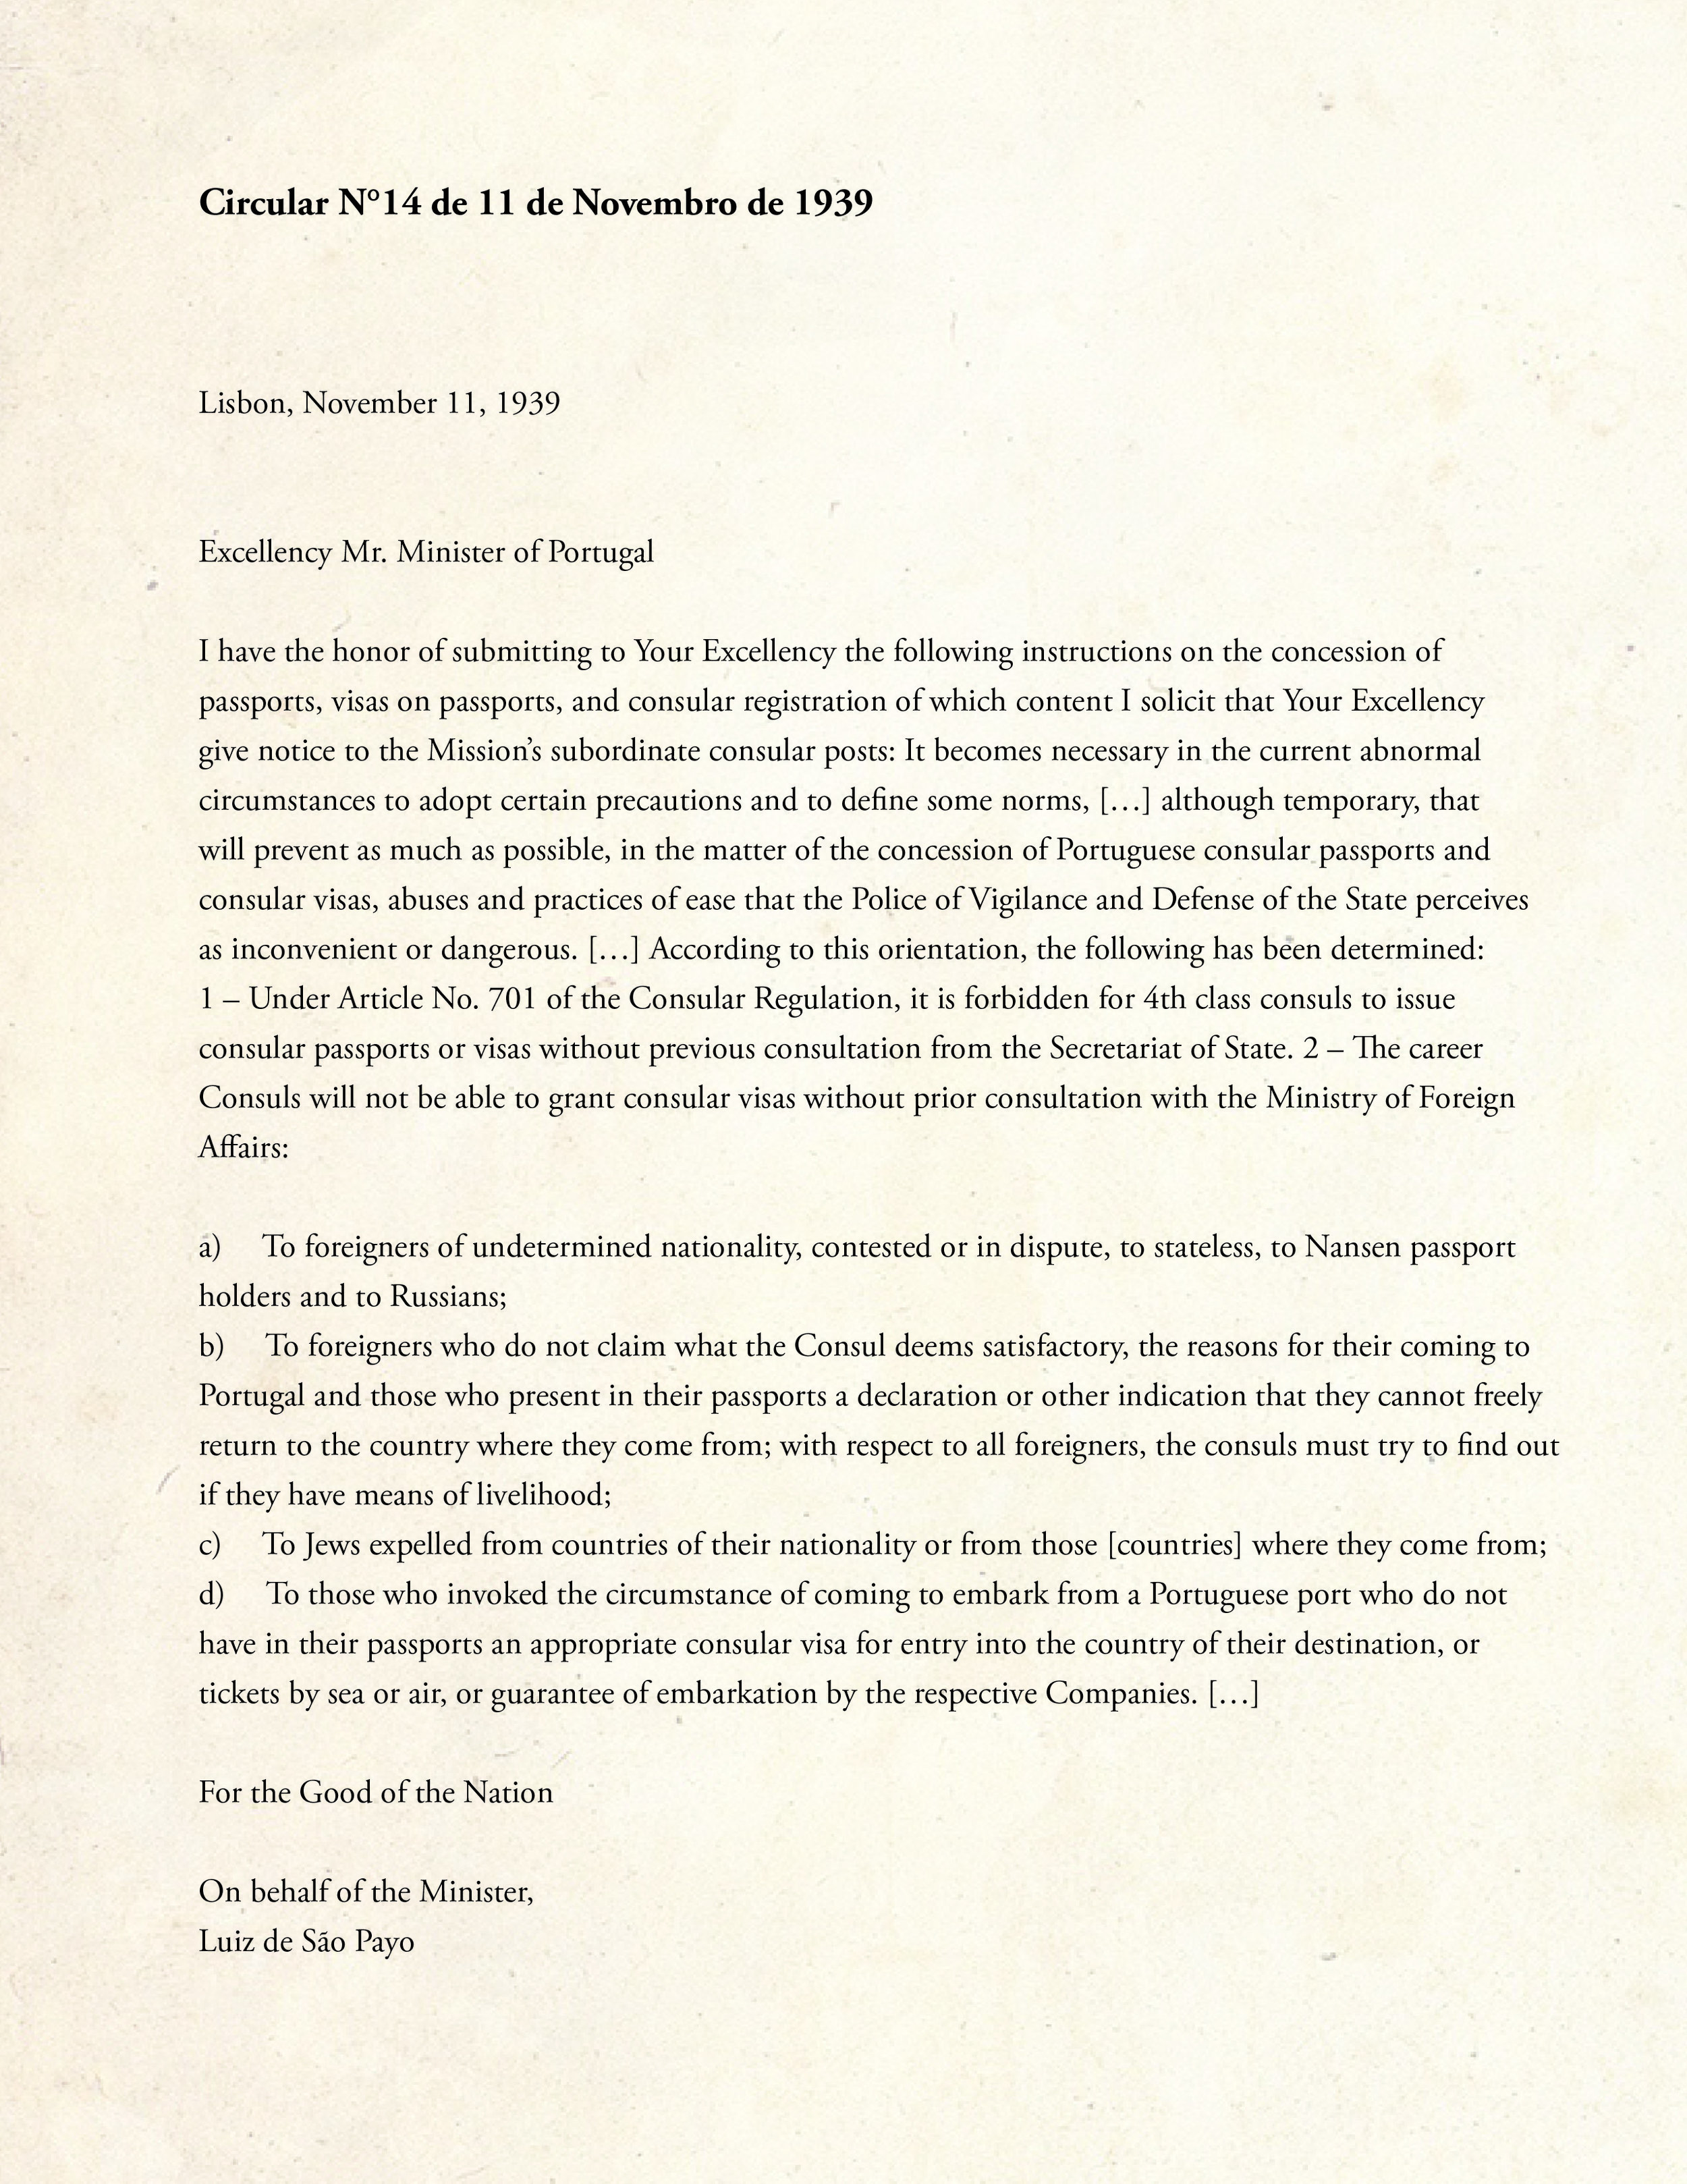 Document 1. Circular 14